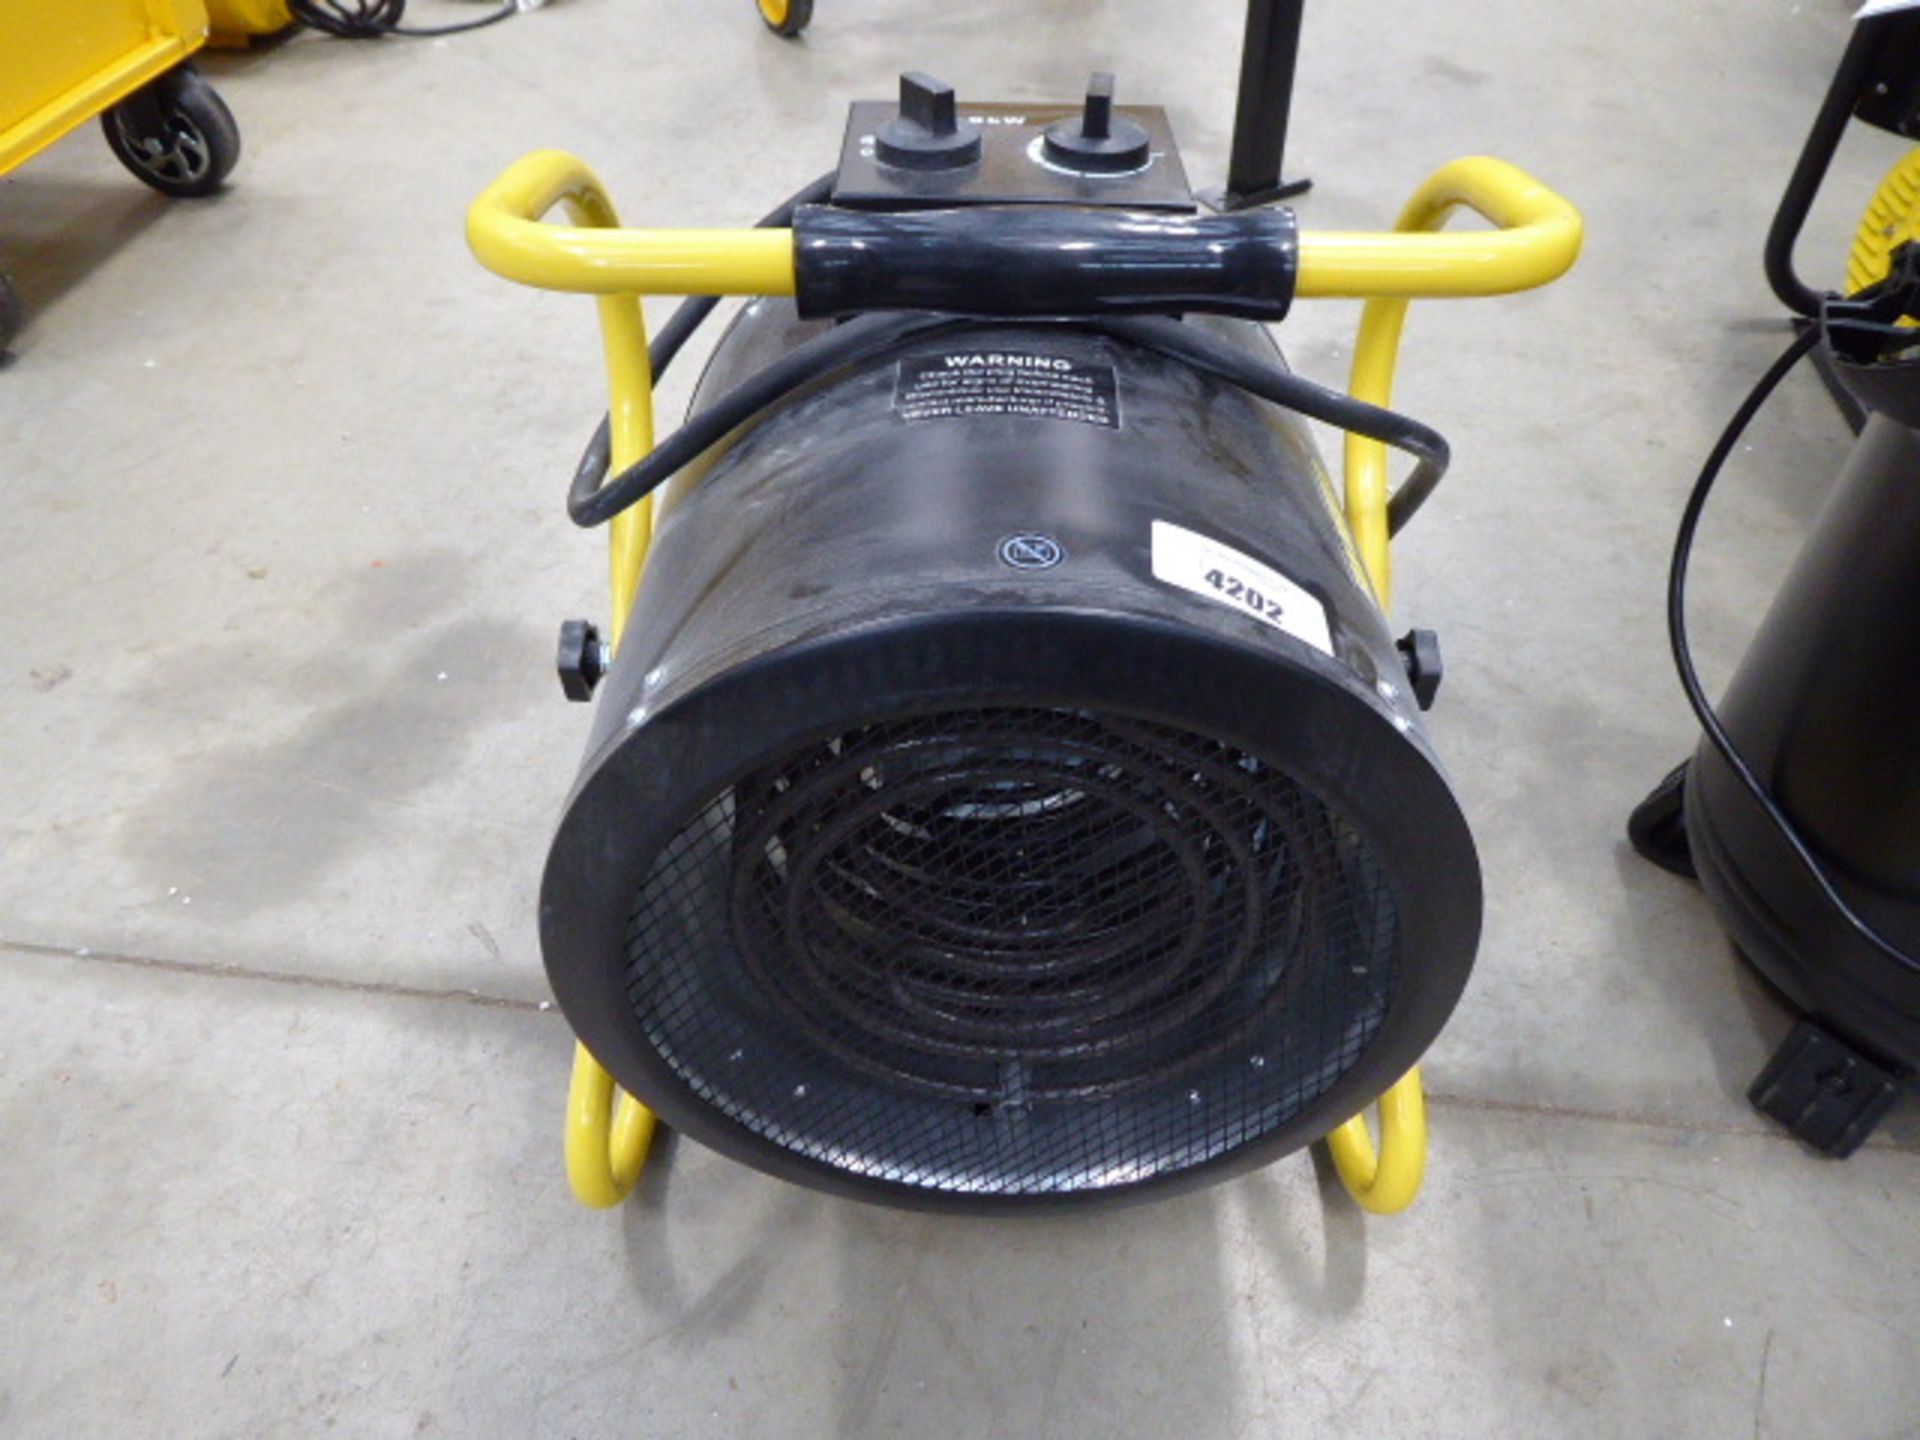 Large black and yellow fan heater